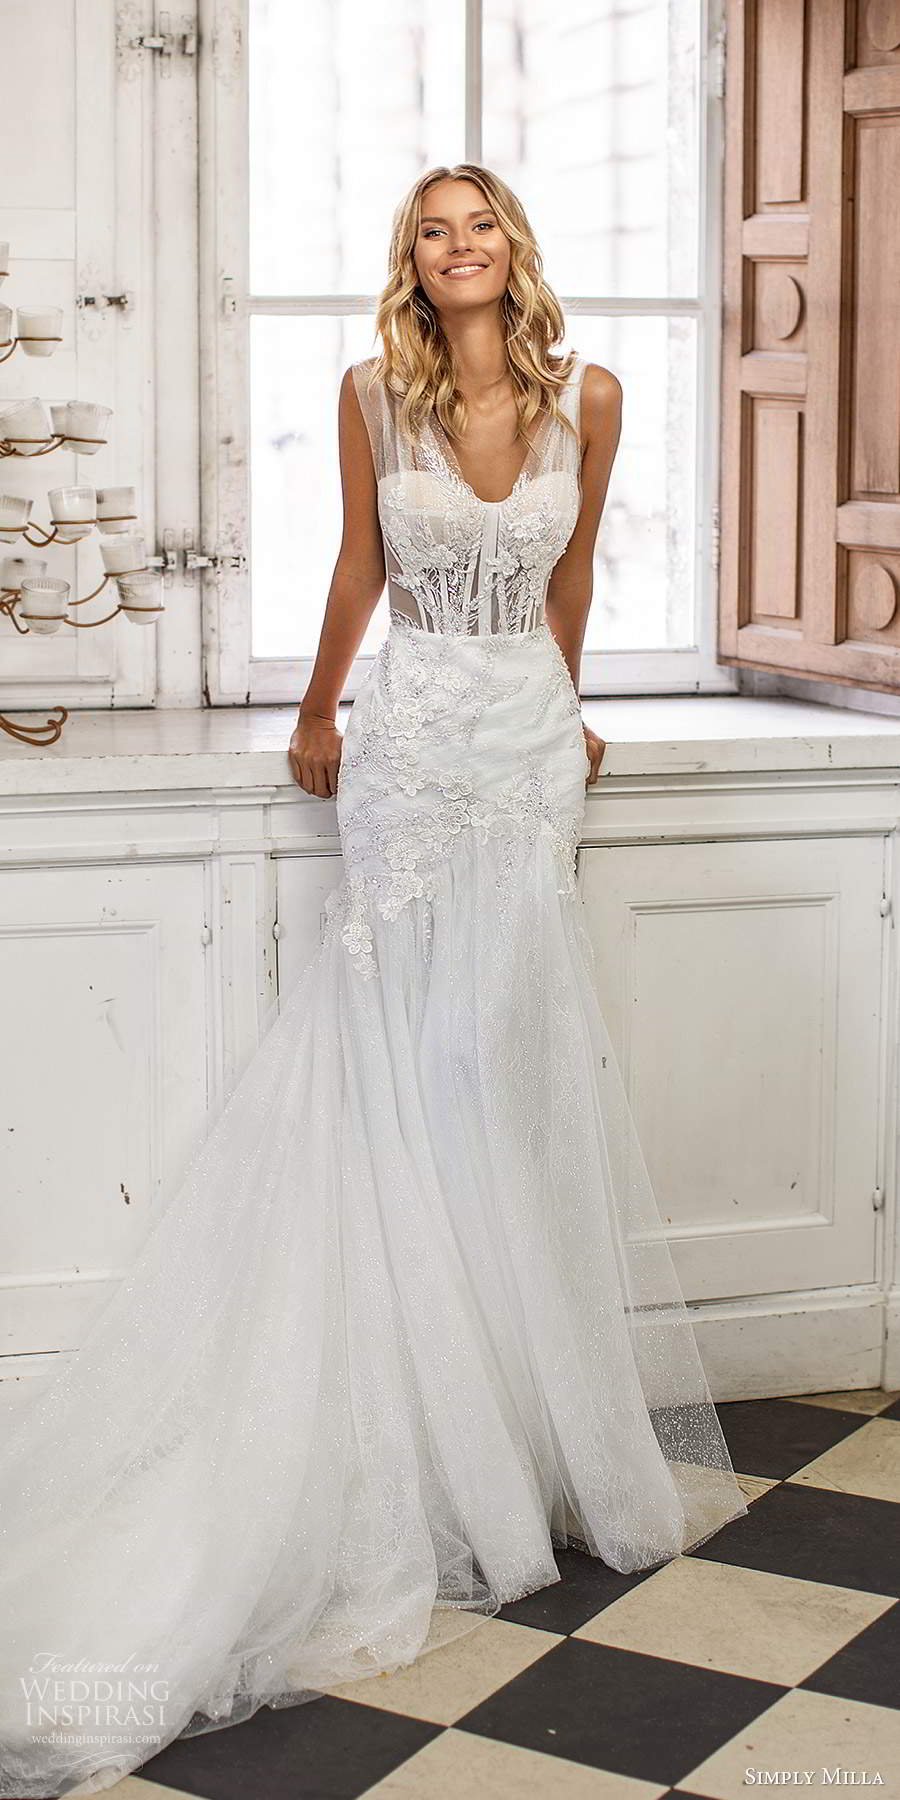 simply milla nova 2020 bridal sleeveless thick ruched straps v neckline embellished fit flare mermaid wedding dress chapel train (16) mv